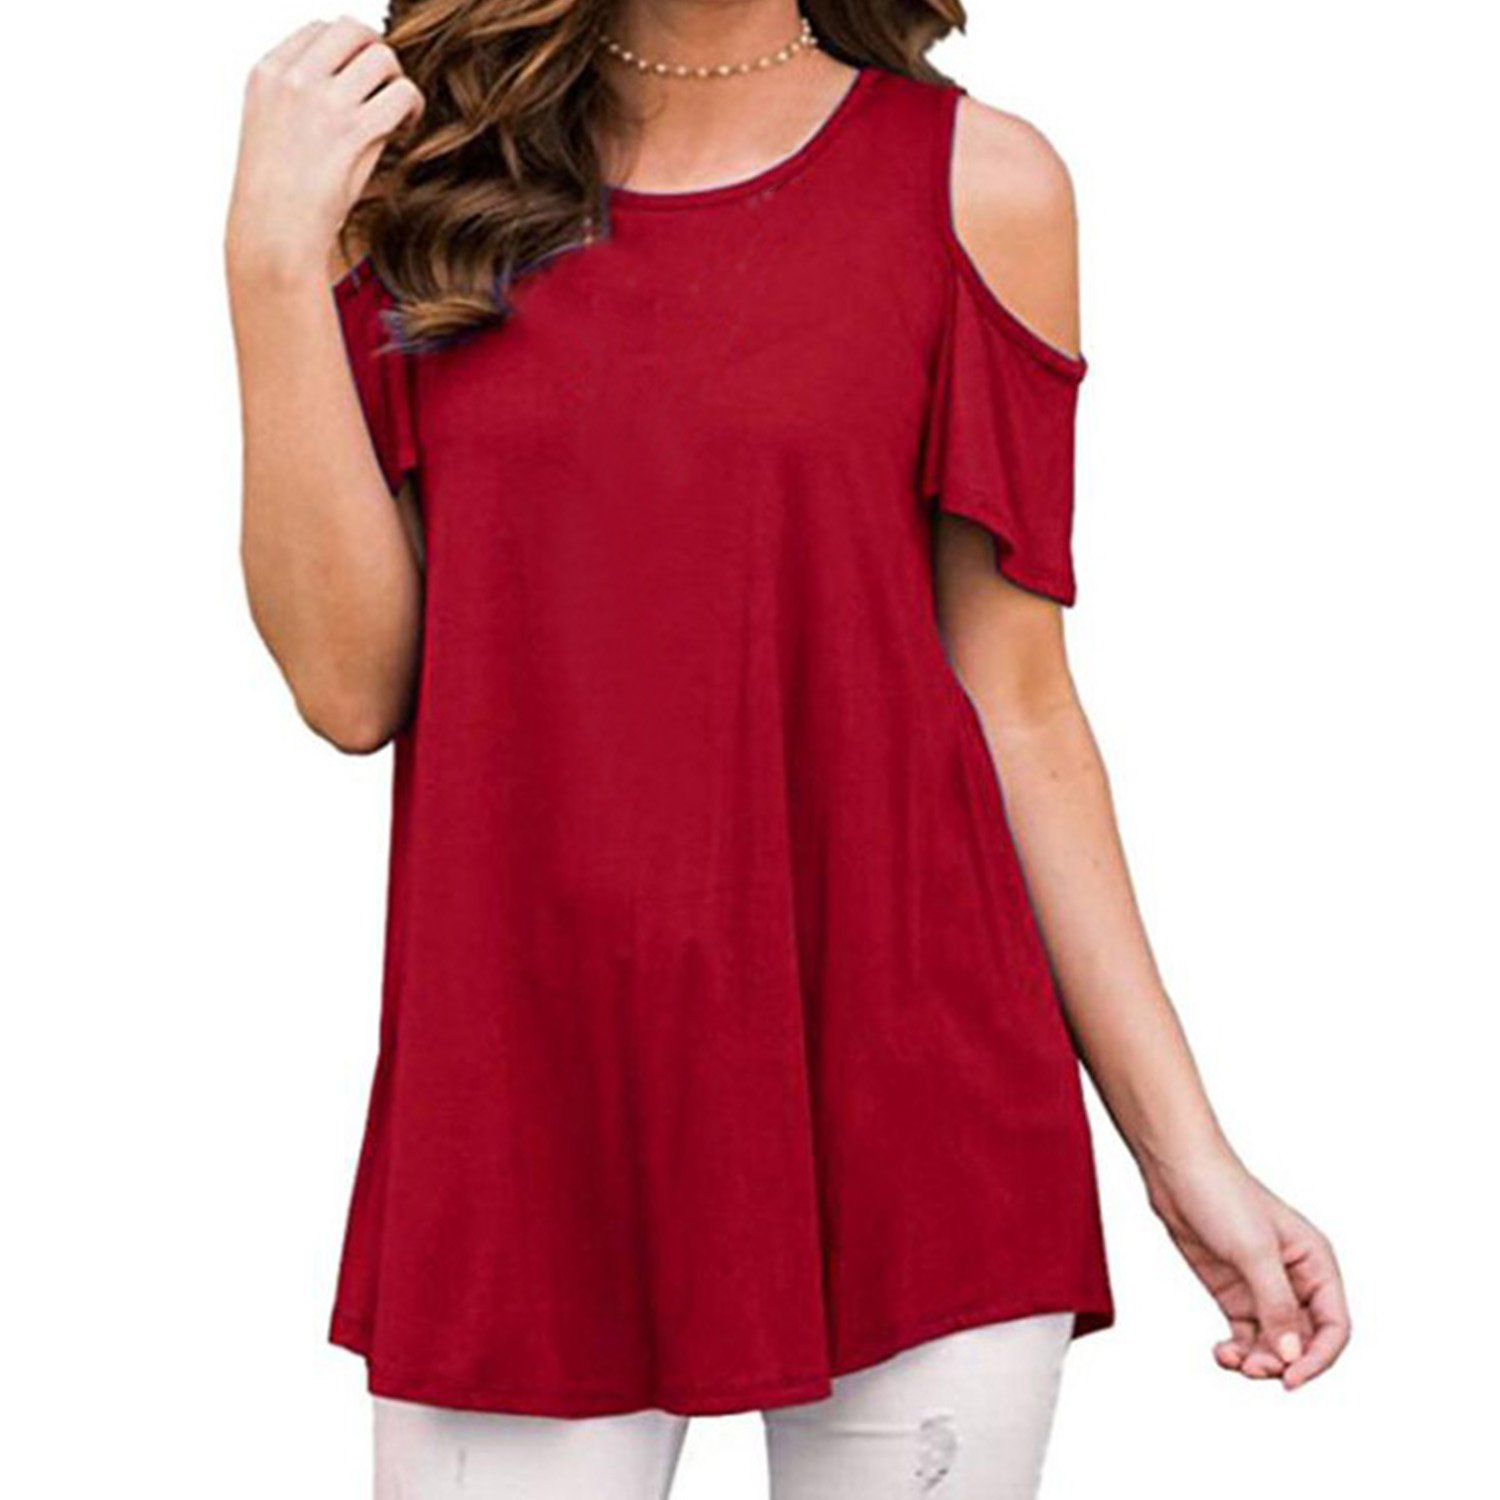 Sufiya Loose Blouse Casual Shirts Cutted up Shoulder Short Sleeve Tunic Tops